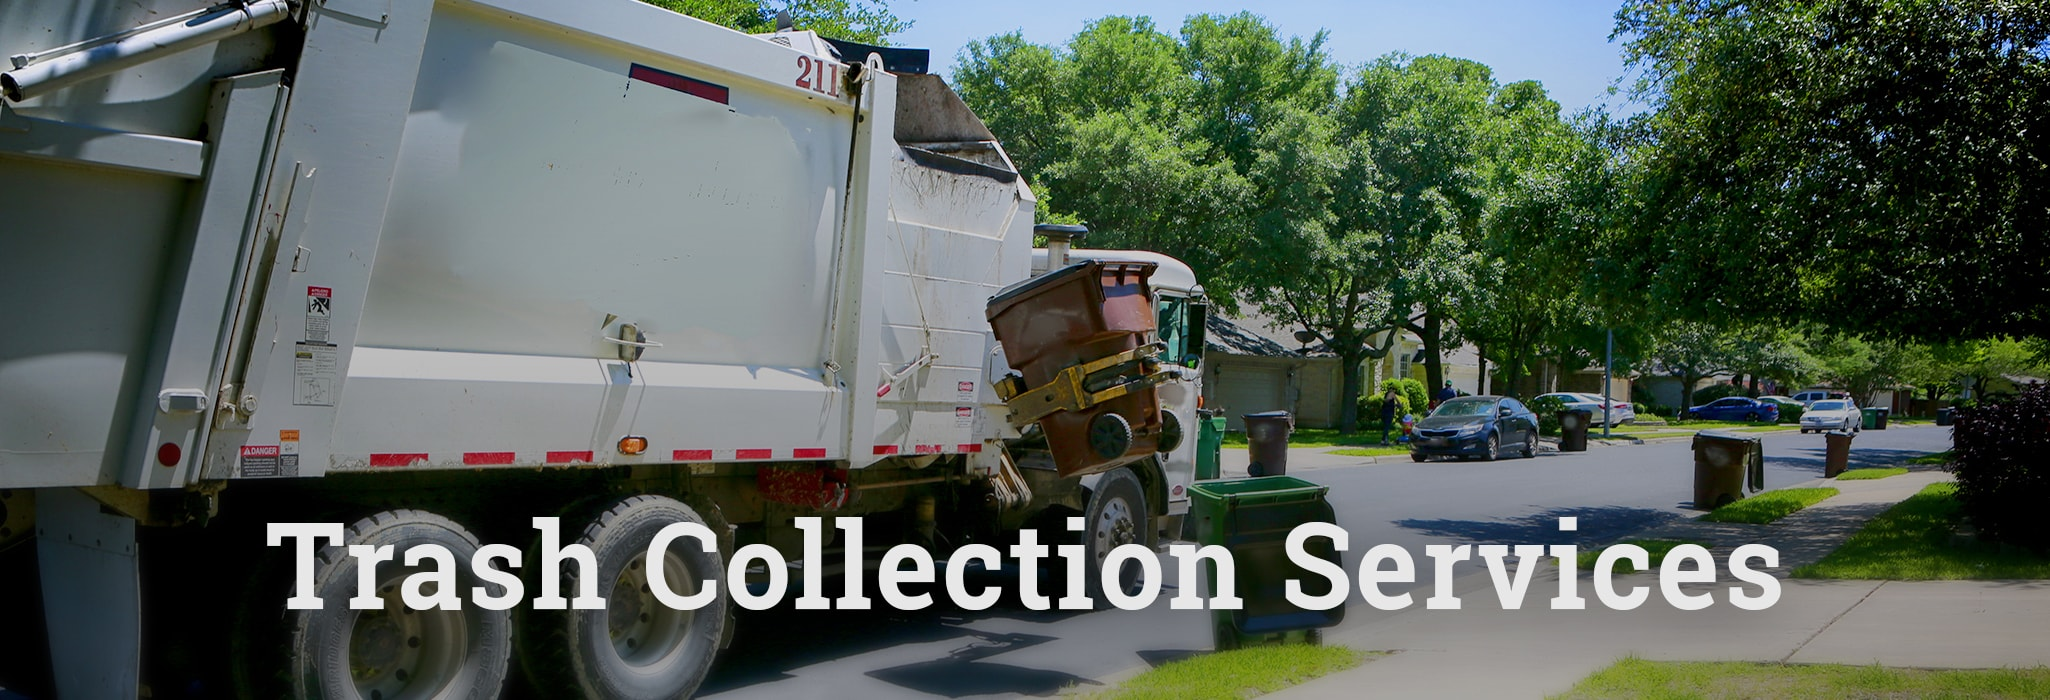 Trash Collection Service with a garbage truck picking up trash in a residential neighborhood.